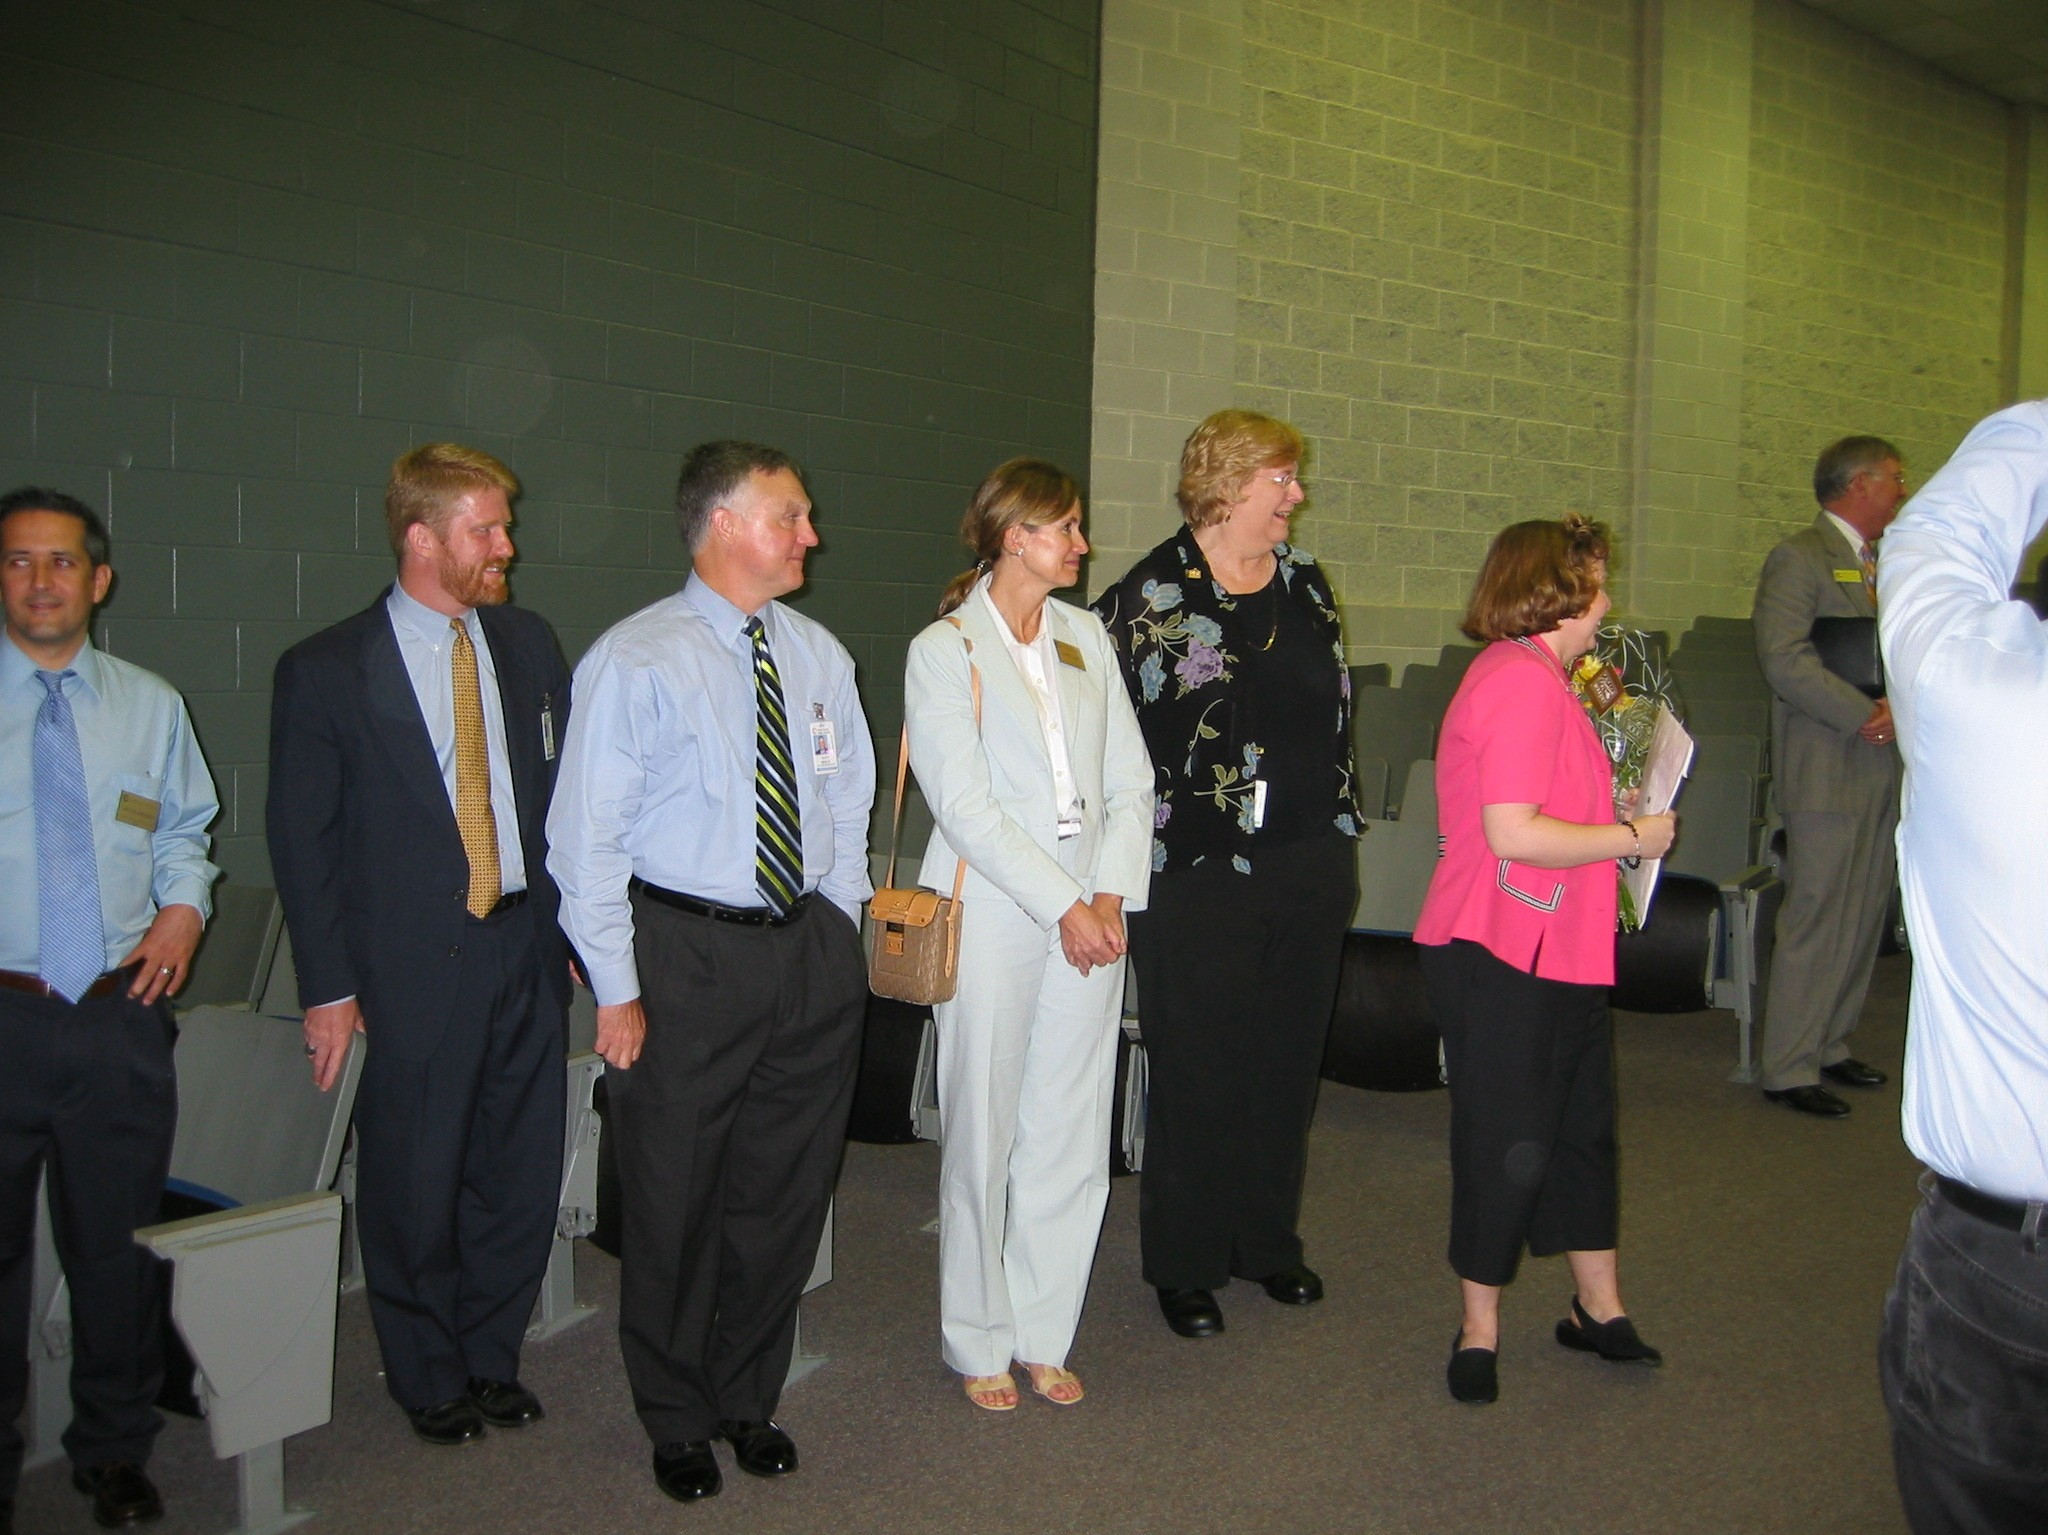 Sept2006/JMD.District.ToY.Officials.Jmd.9.18.06.jpg